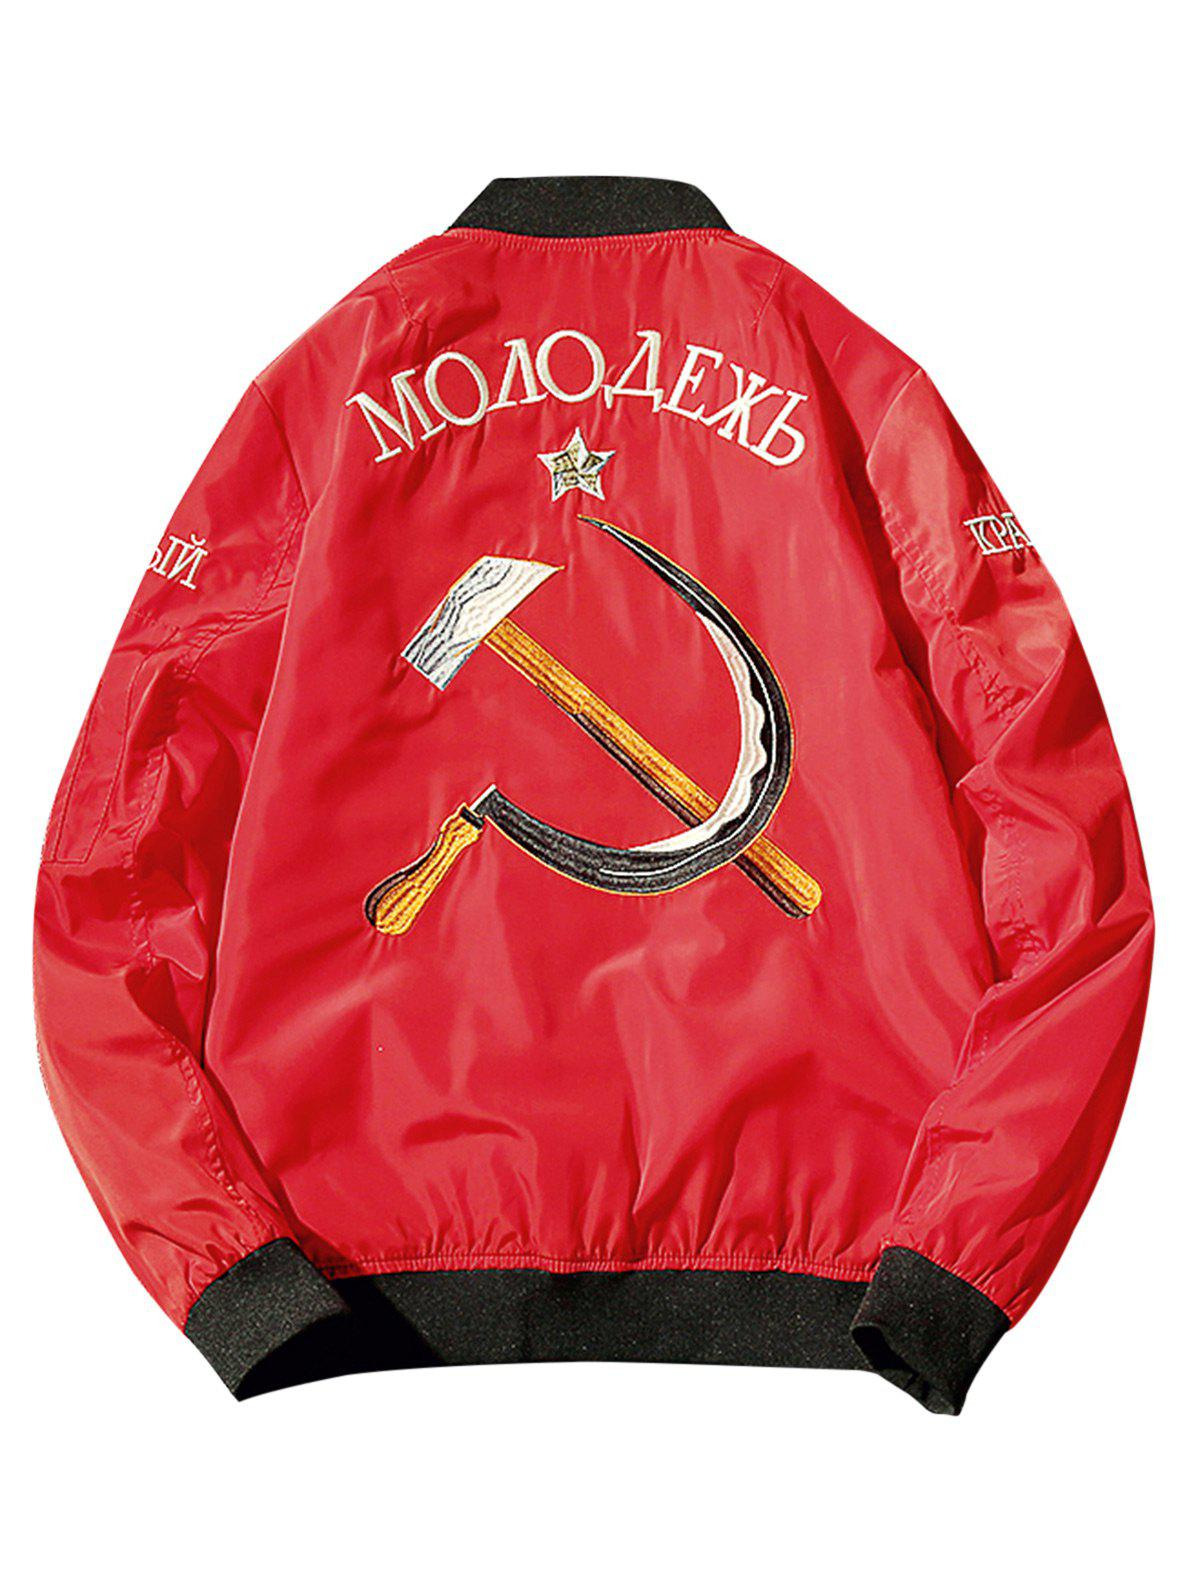 Sickle Graphic Embroidered Zip Up Bomber Jacket 223578507